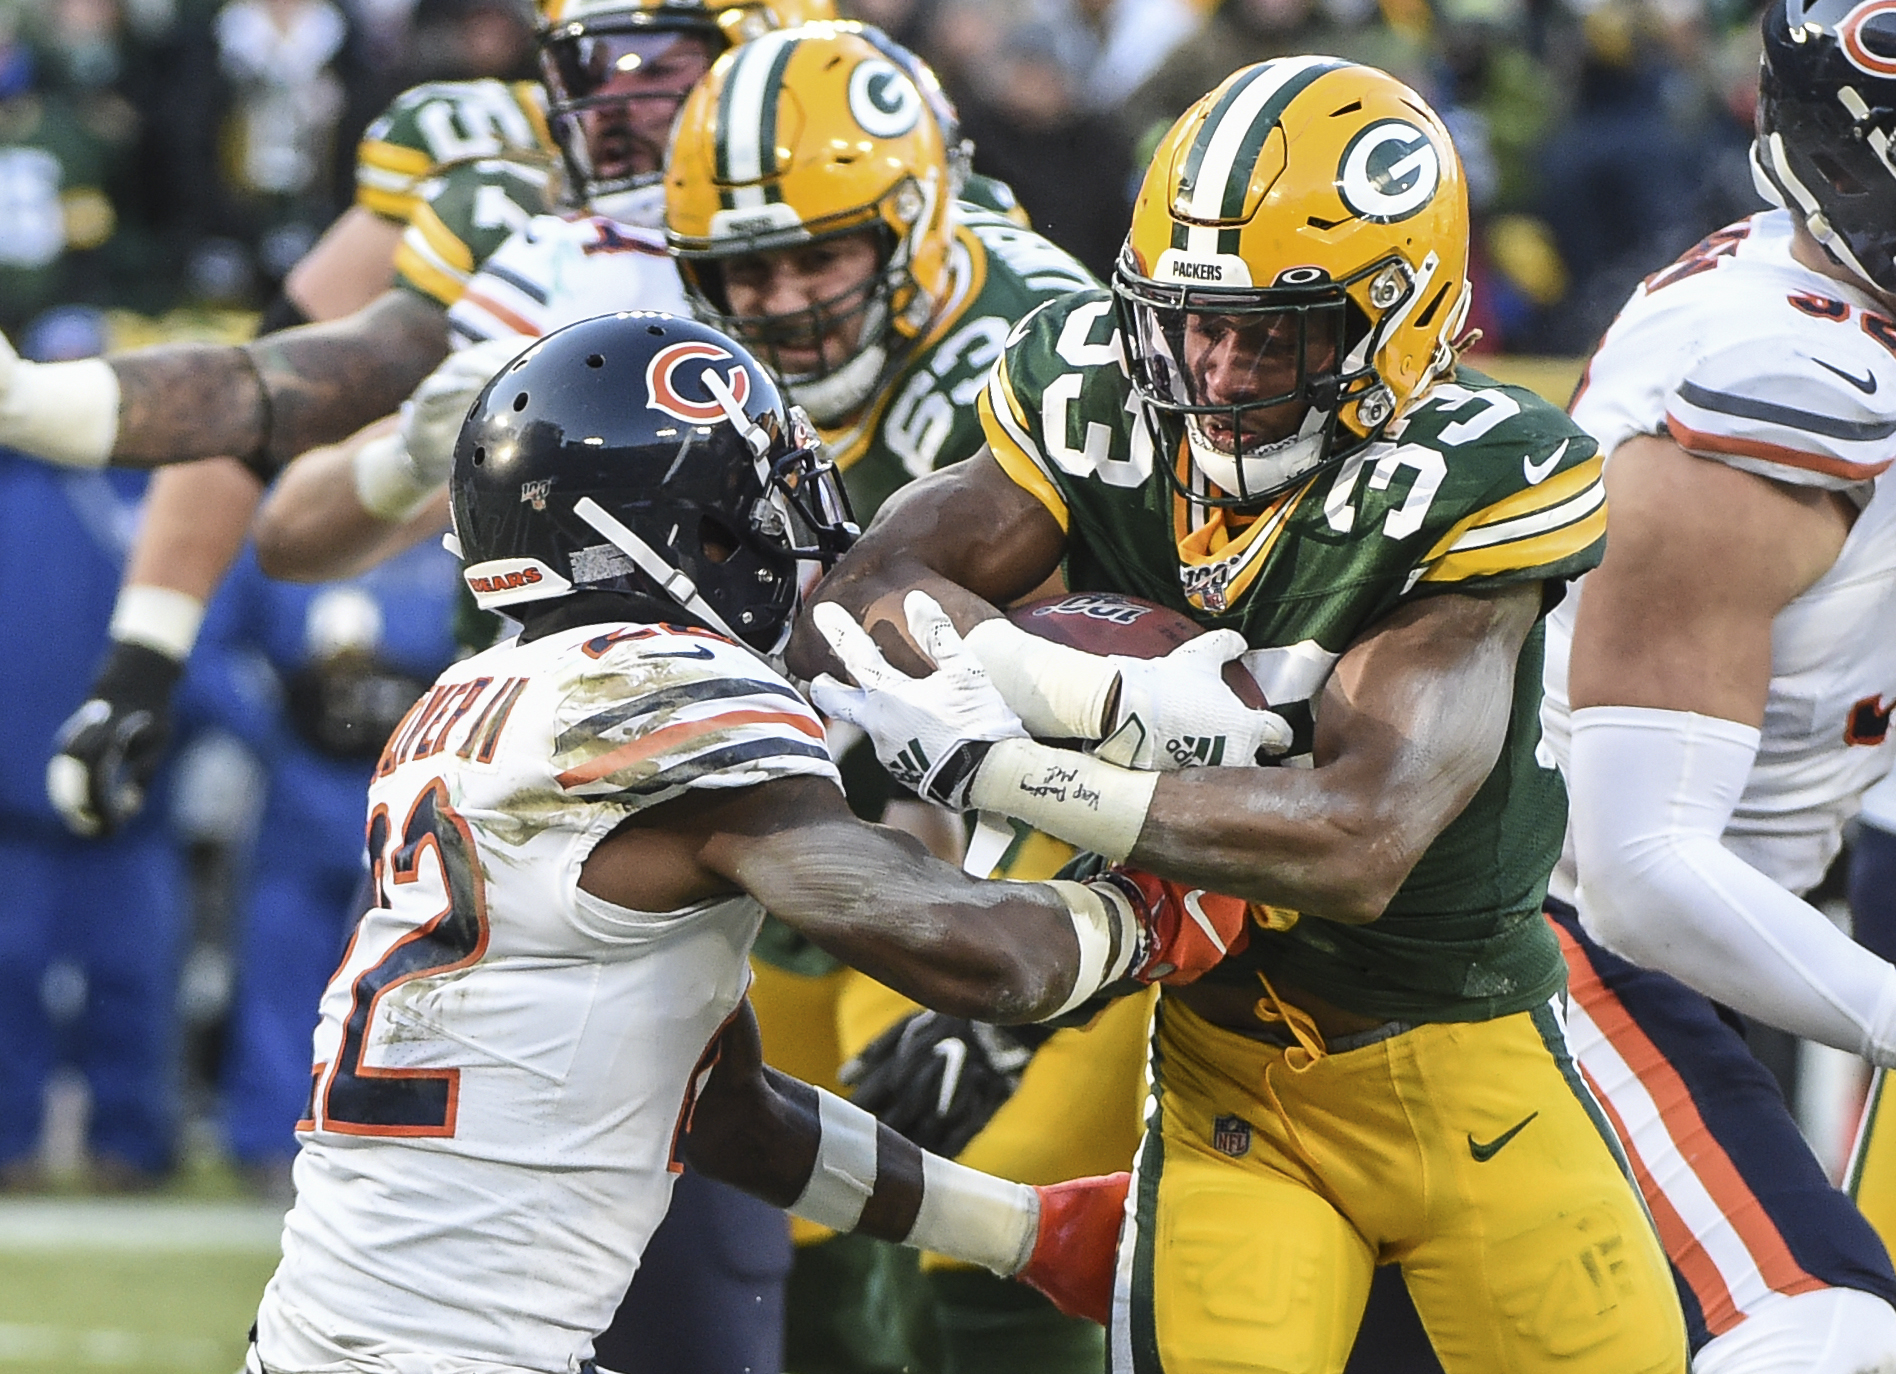 Six Key Factors That Will Determine the Winner of the Packers-Bears